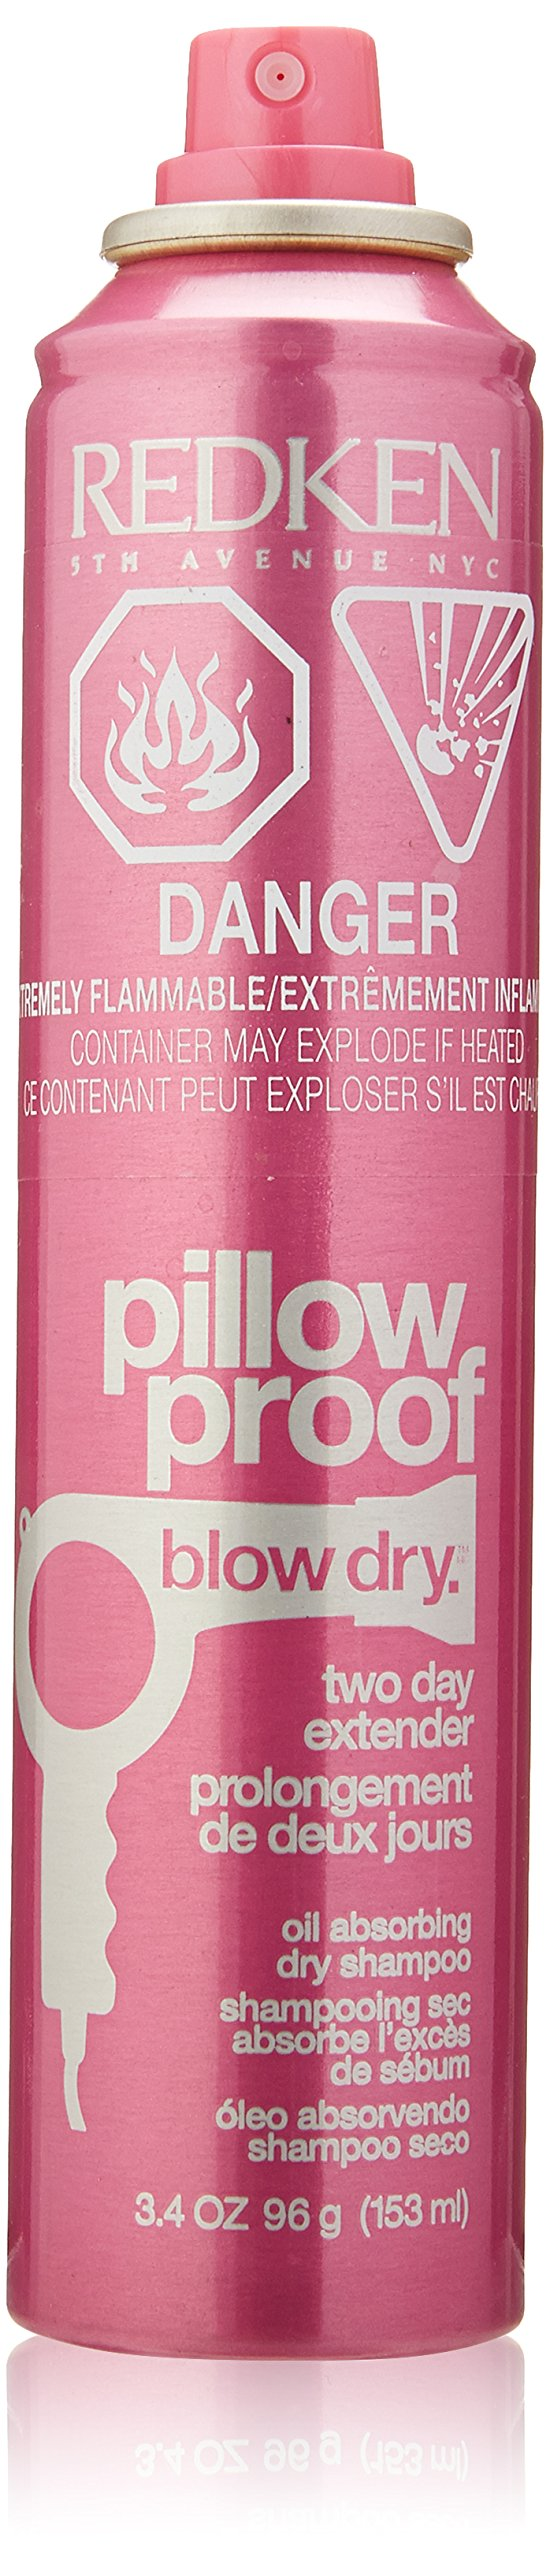 Redken Pillow Proof Blow Dry Two Day Extender for Unisex, 3.4 Ounce